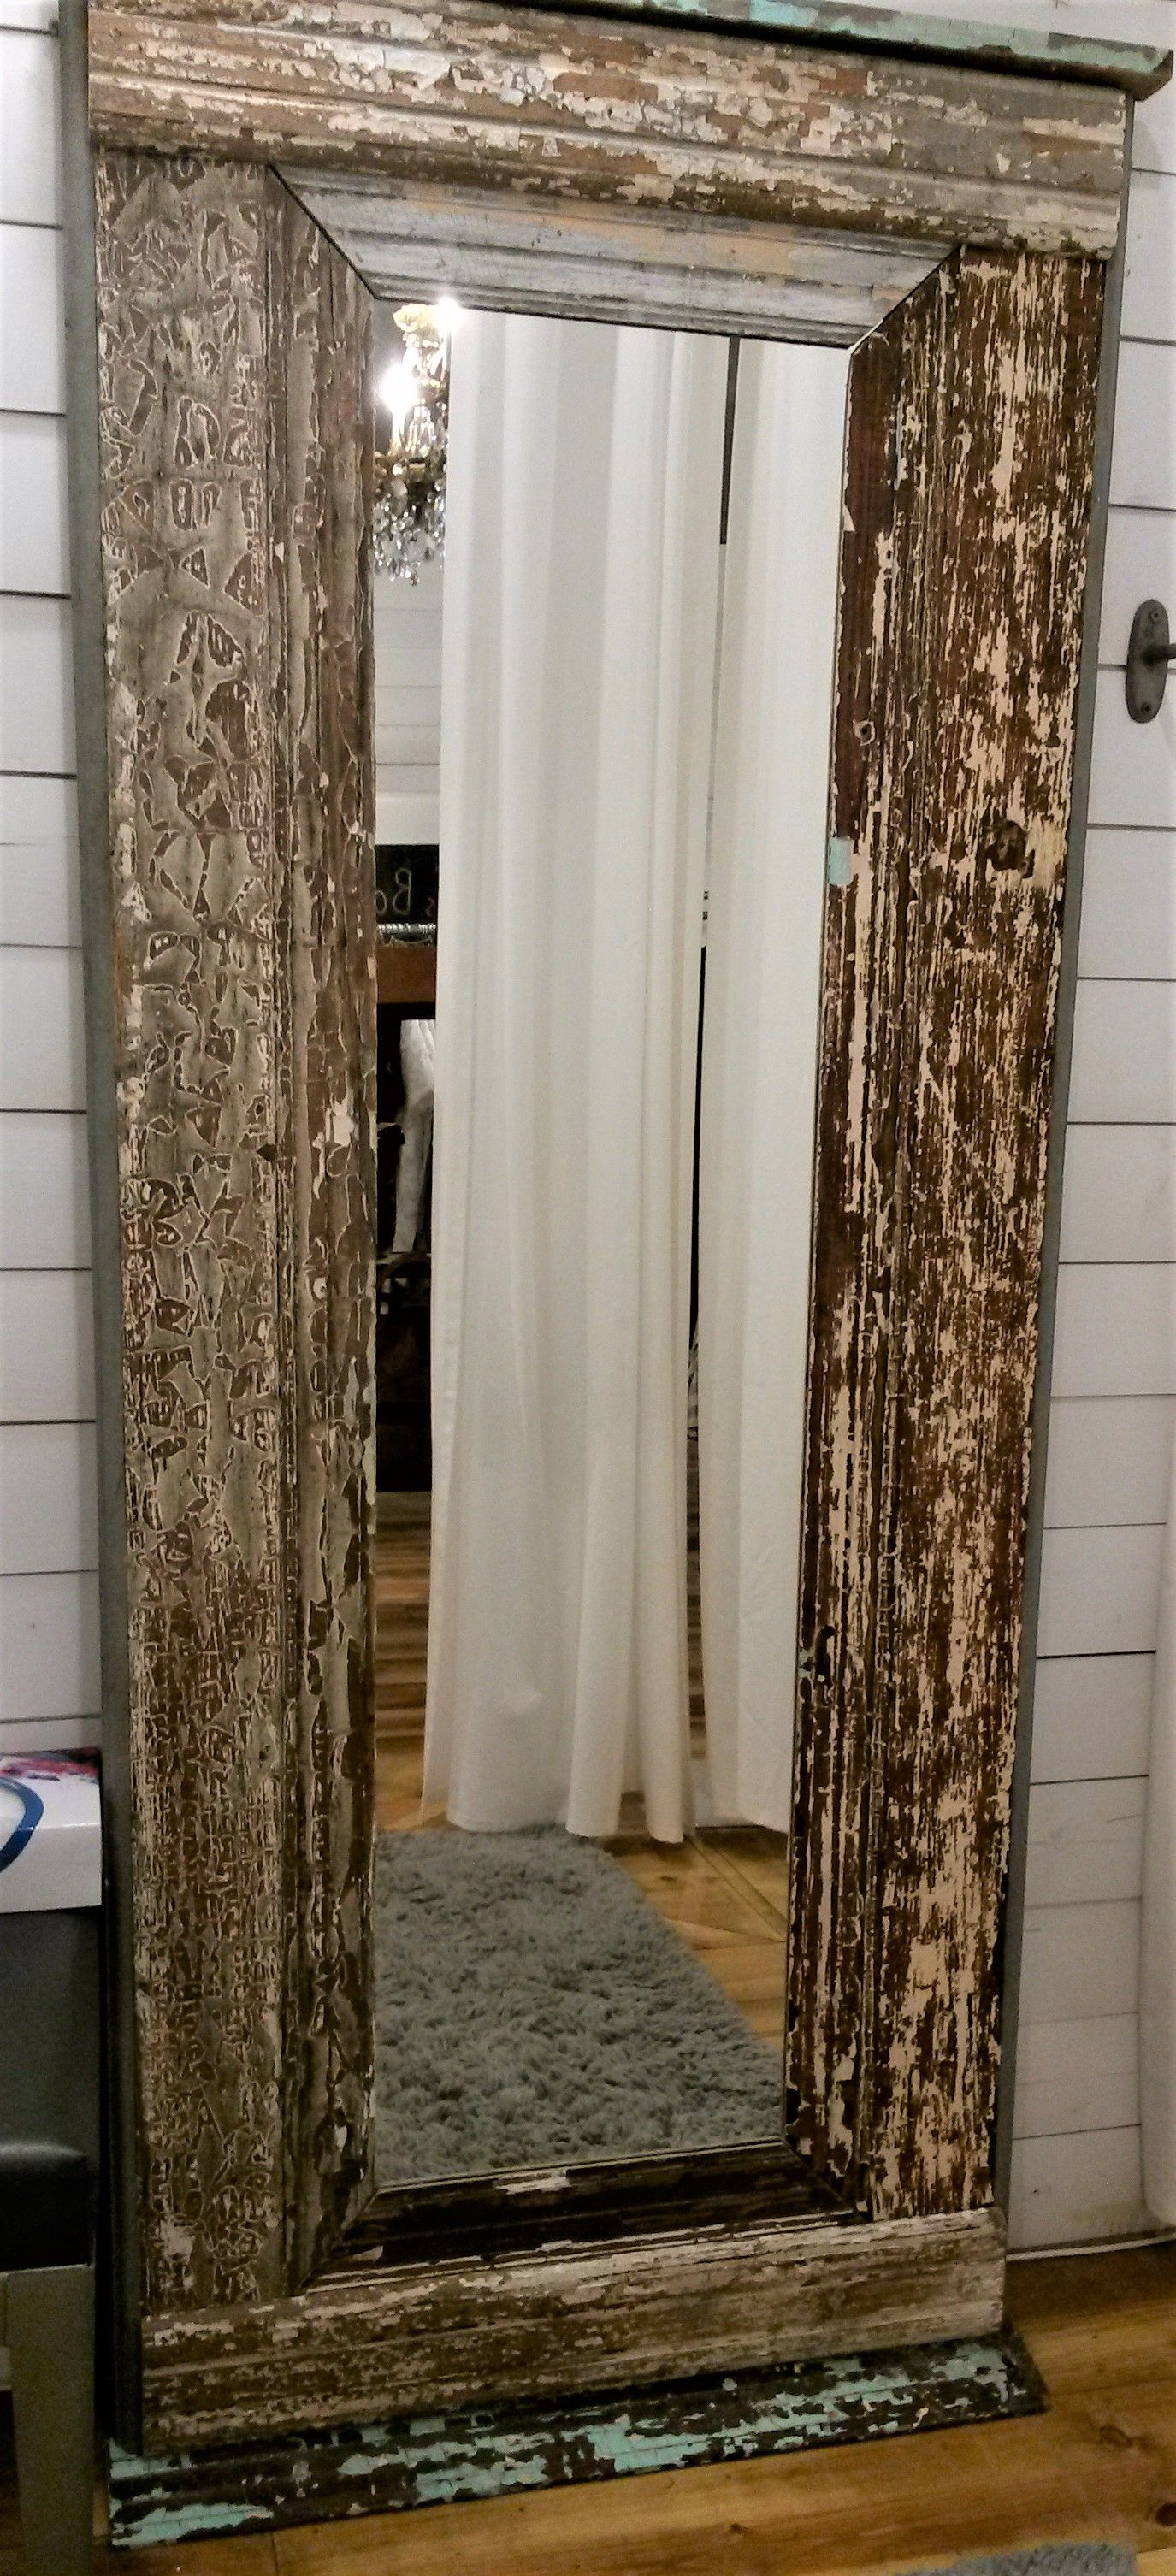 Diy 6ft Tall Free Standing Mirror From